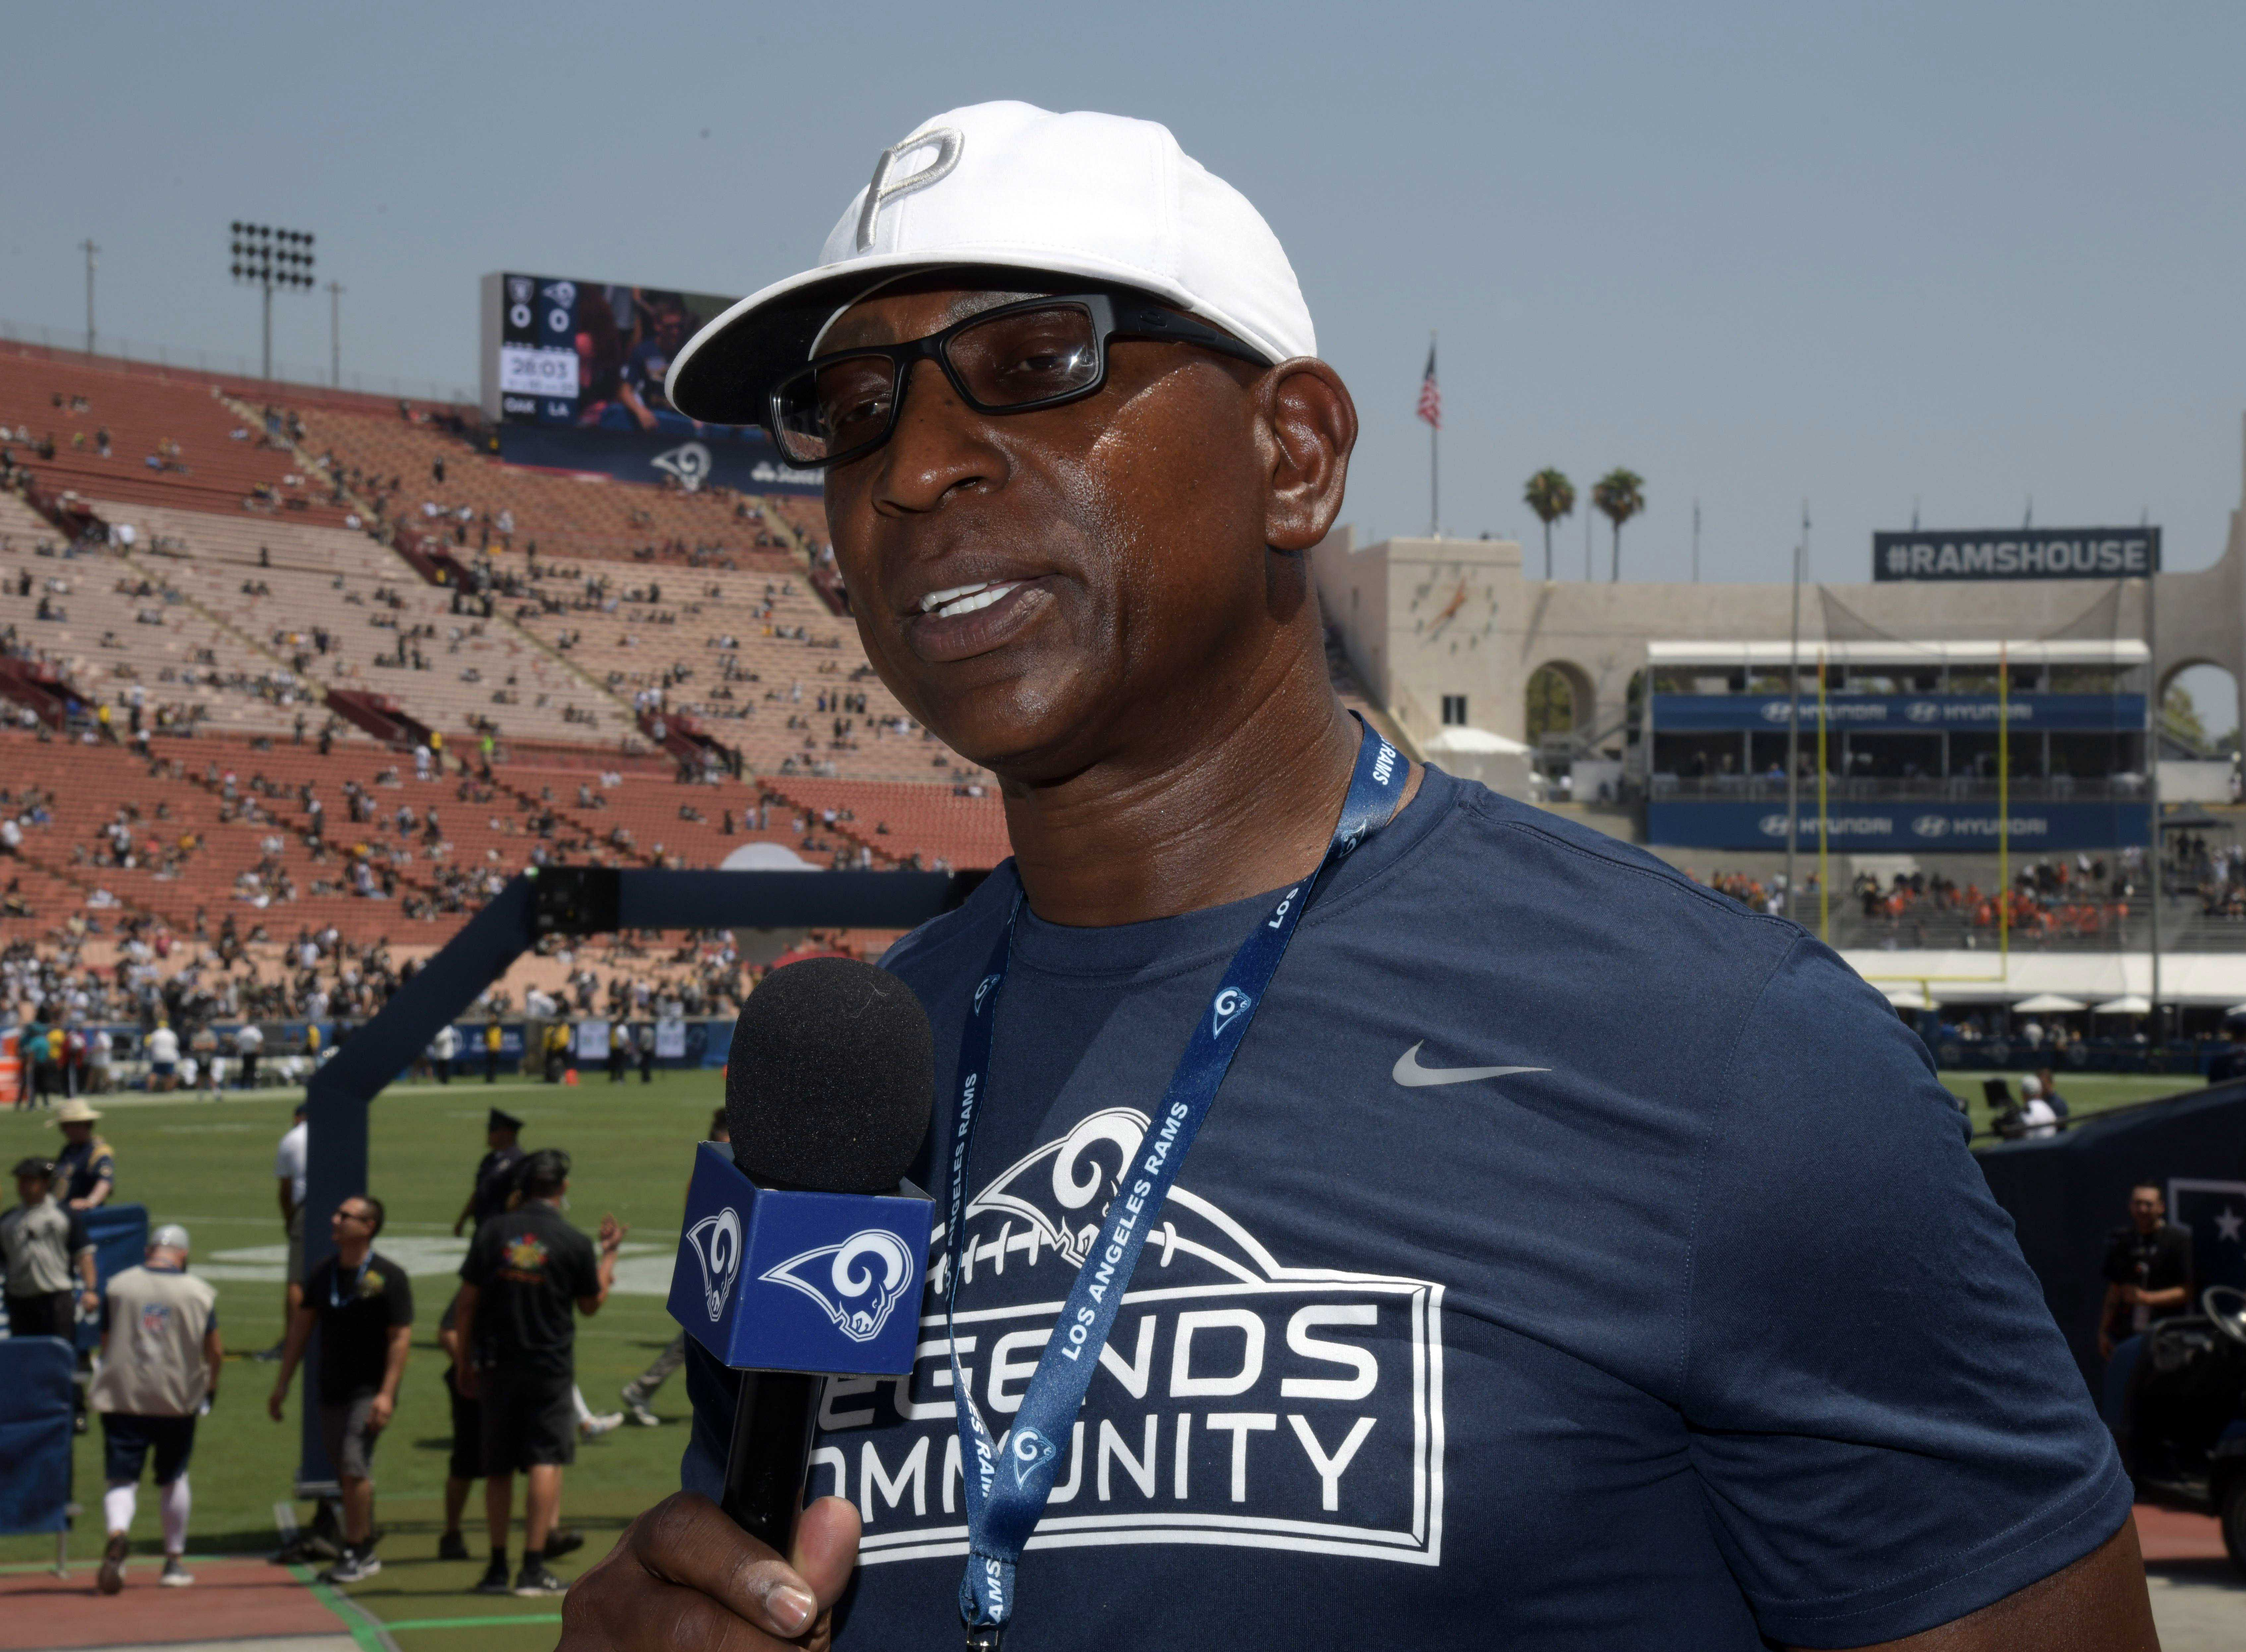 Eric Dickerson comes up short in bid for Rams to change their logo